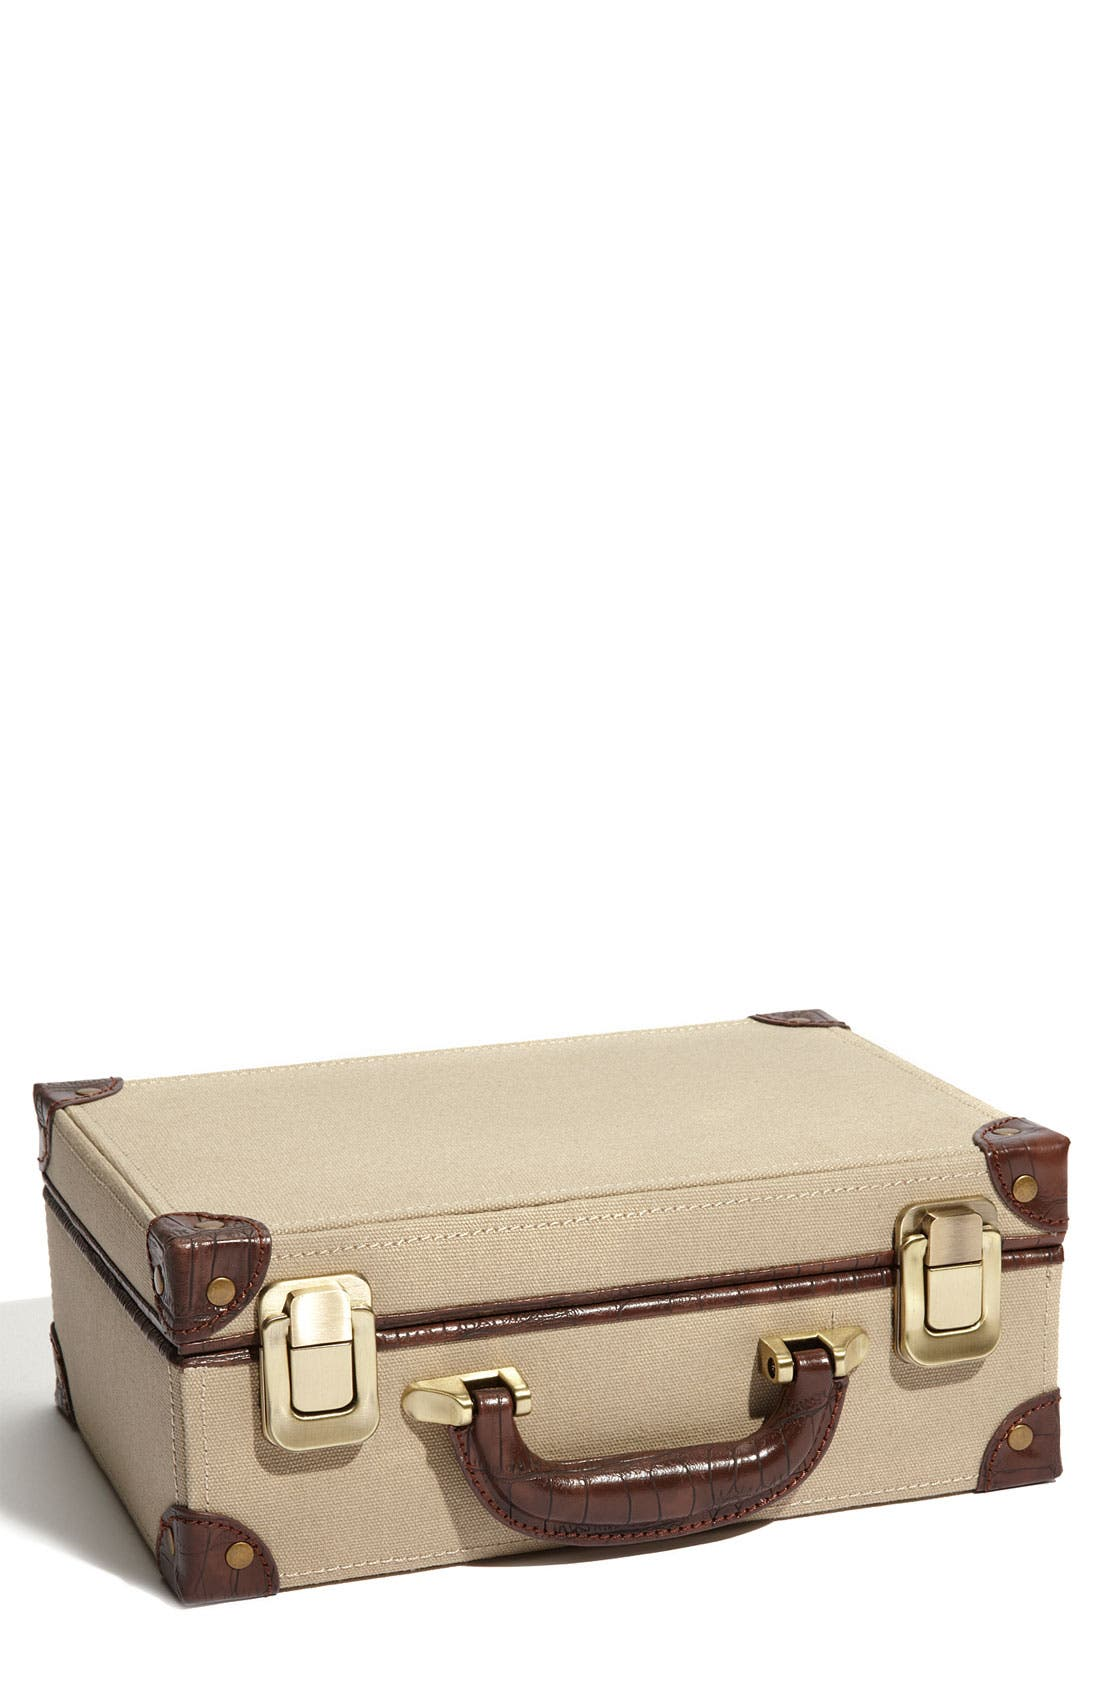 LusterLoc<sup>™</sup> Canvas Jewelry Suitcase, Main, color, 251